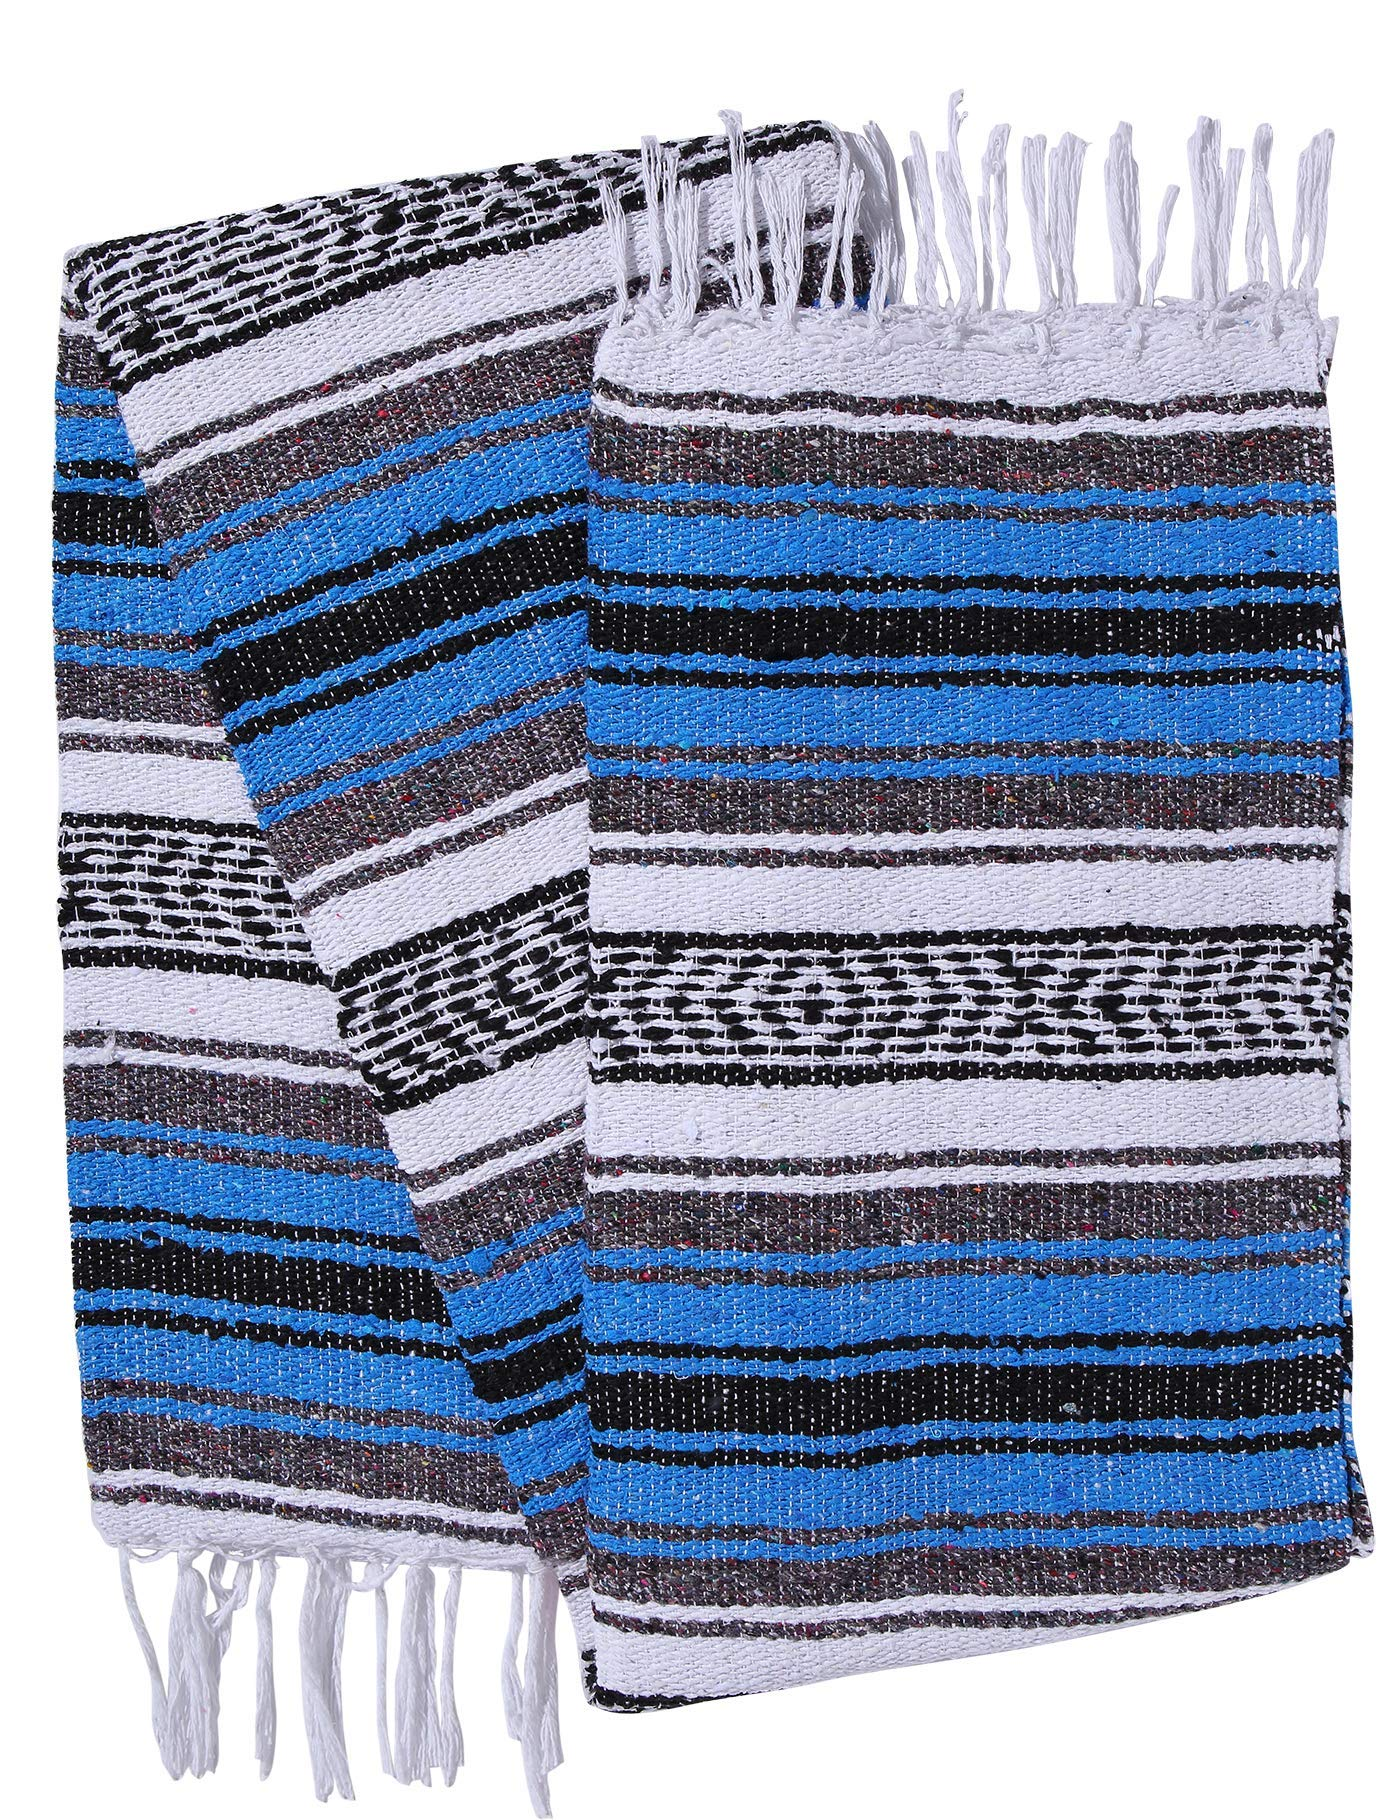 El Paso Designs Genuine Mexican Falsa Blanket - Yoga Studio Blanket, Colorful, Soft Woven Serape Imported from Mexico (Blue) by El Paso Designs (Image #3)